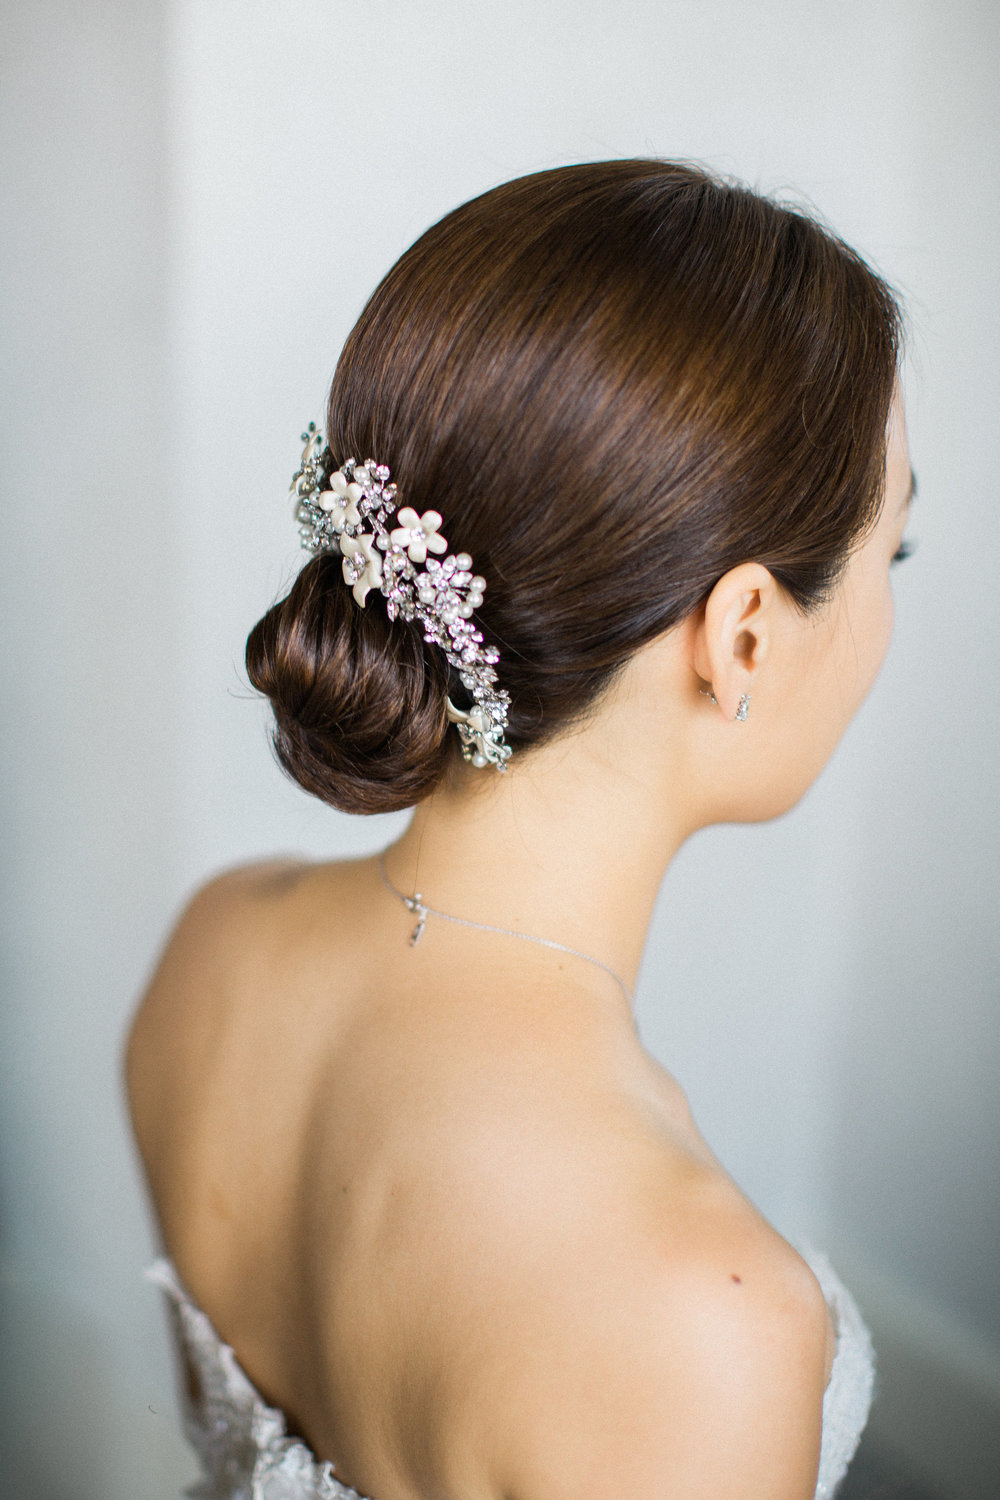 sleek low bun with a Twigs and Honey hairpiece for a Villa wedding in Florence, Italy